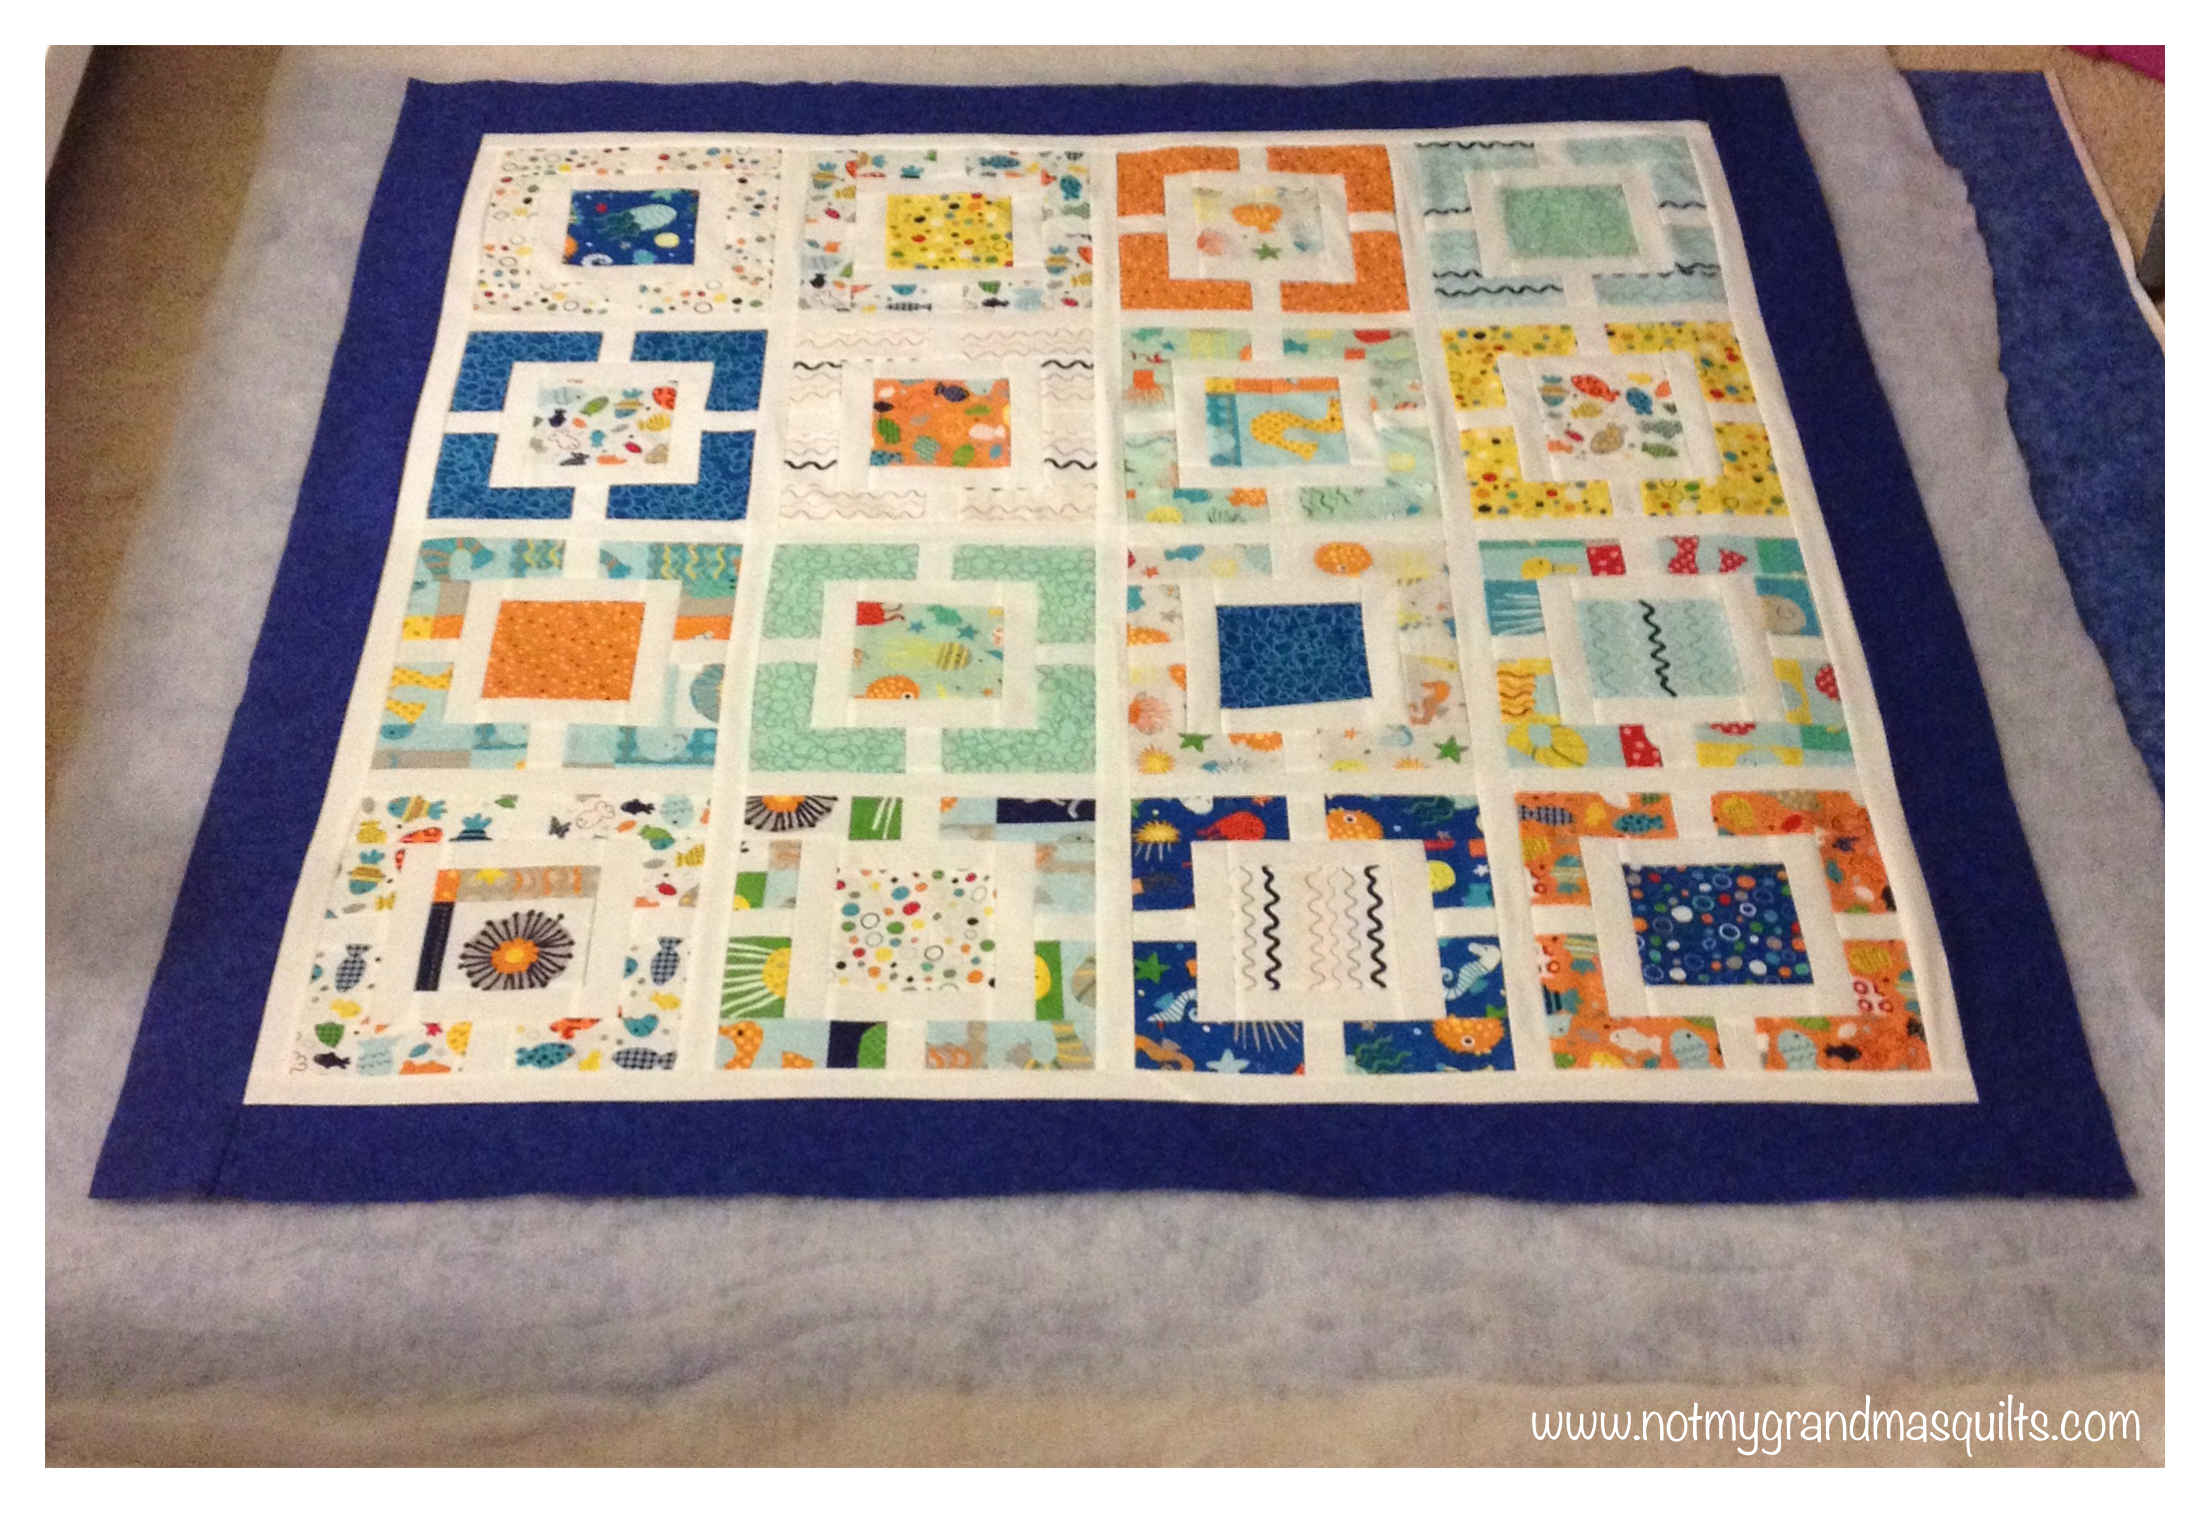 No stress window pane quilt the clever quilt studio for Window pane quilt design